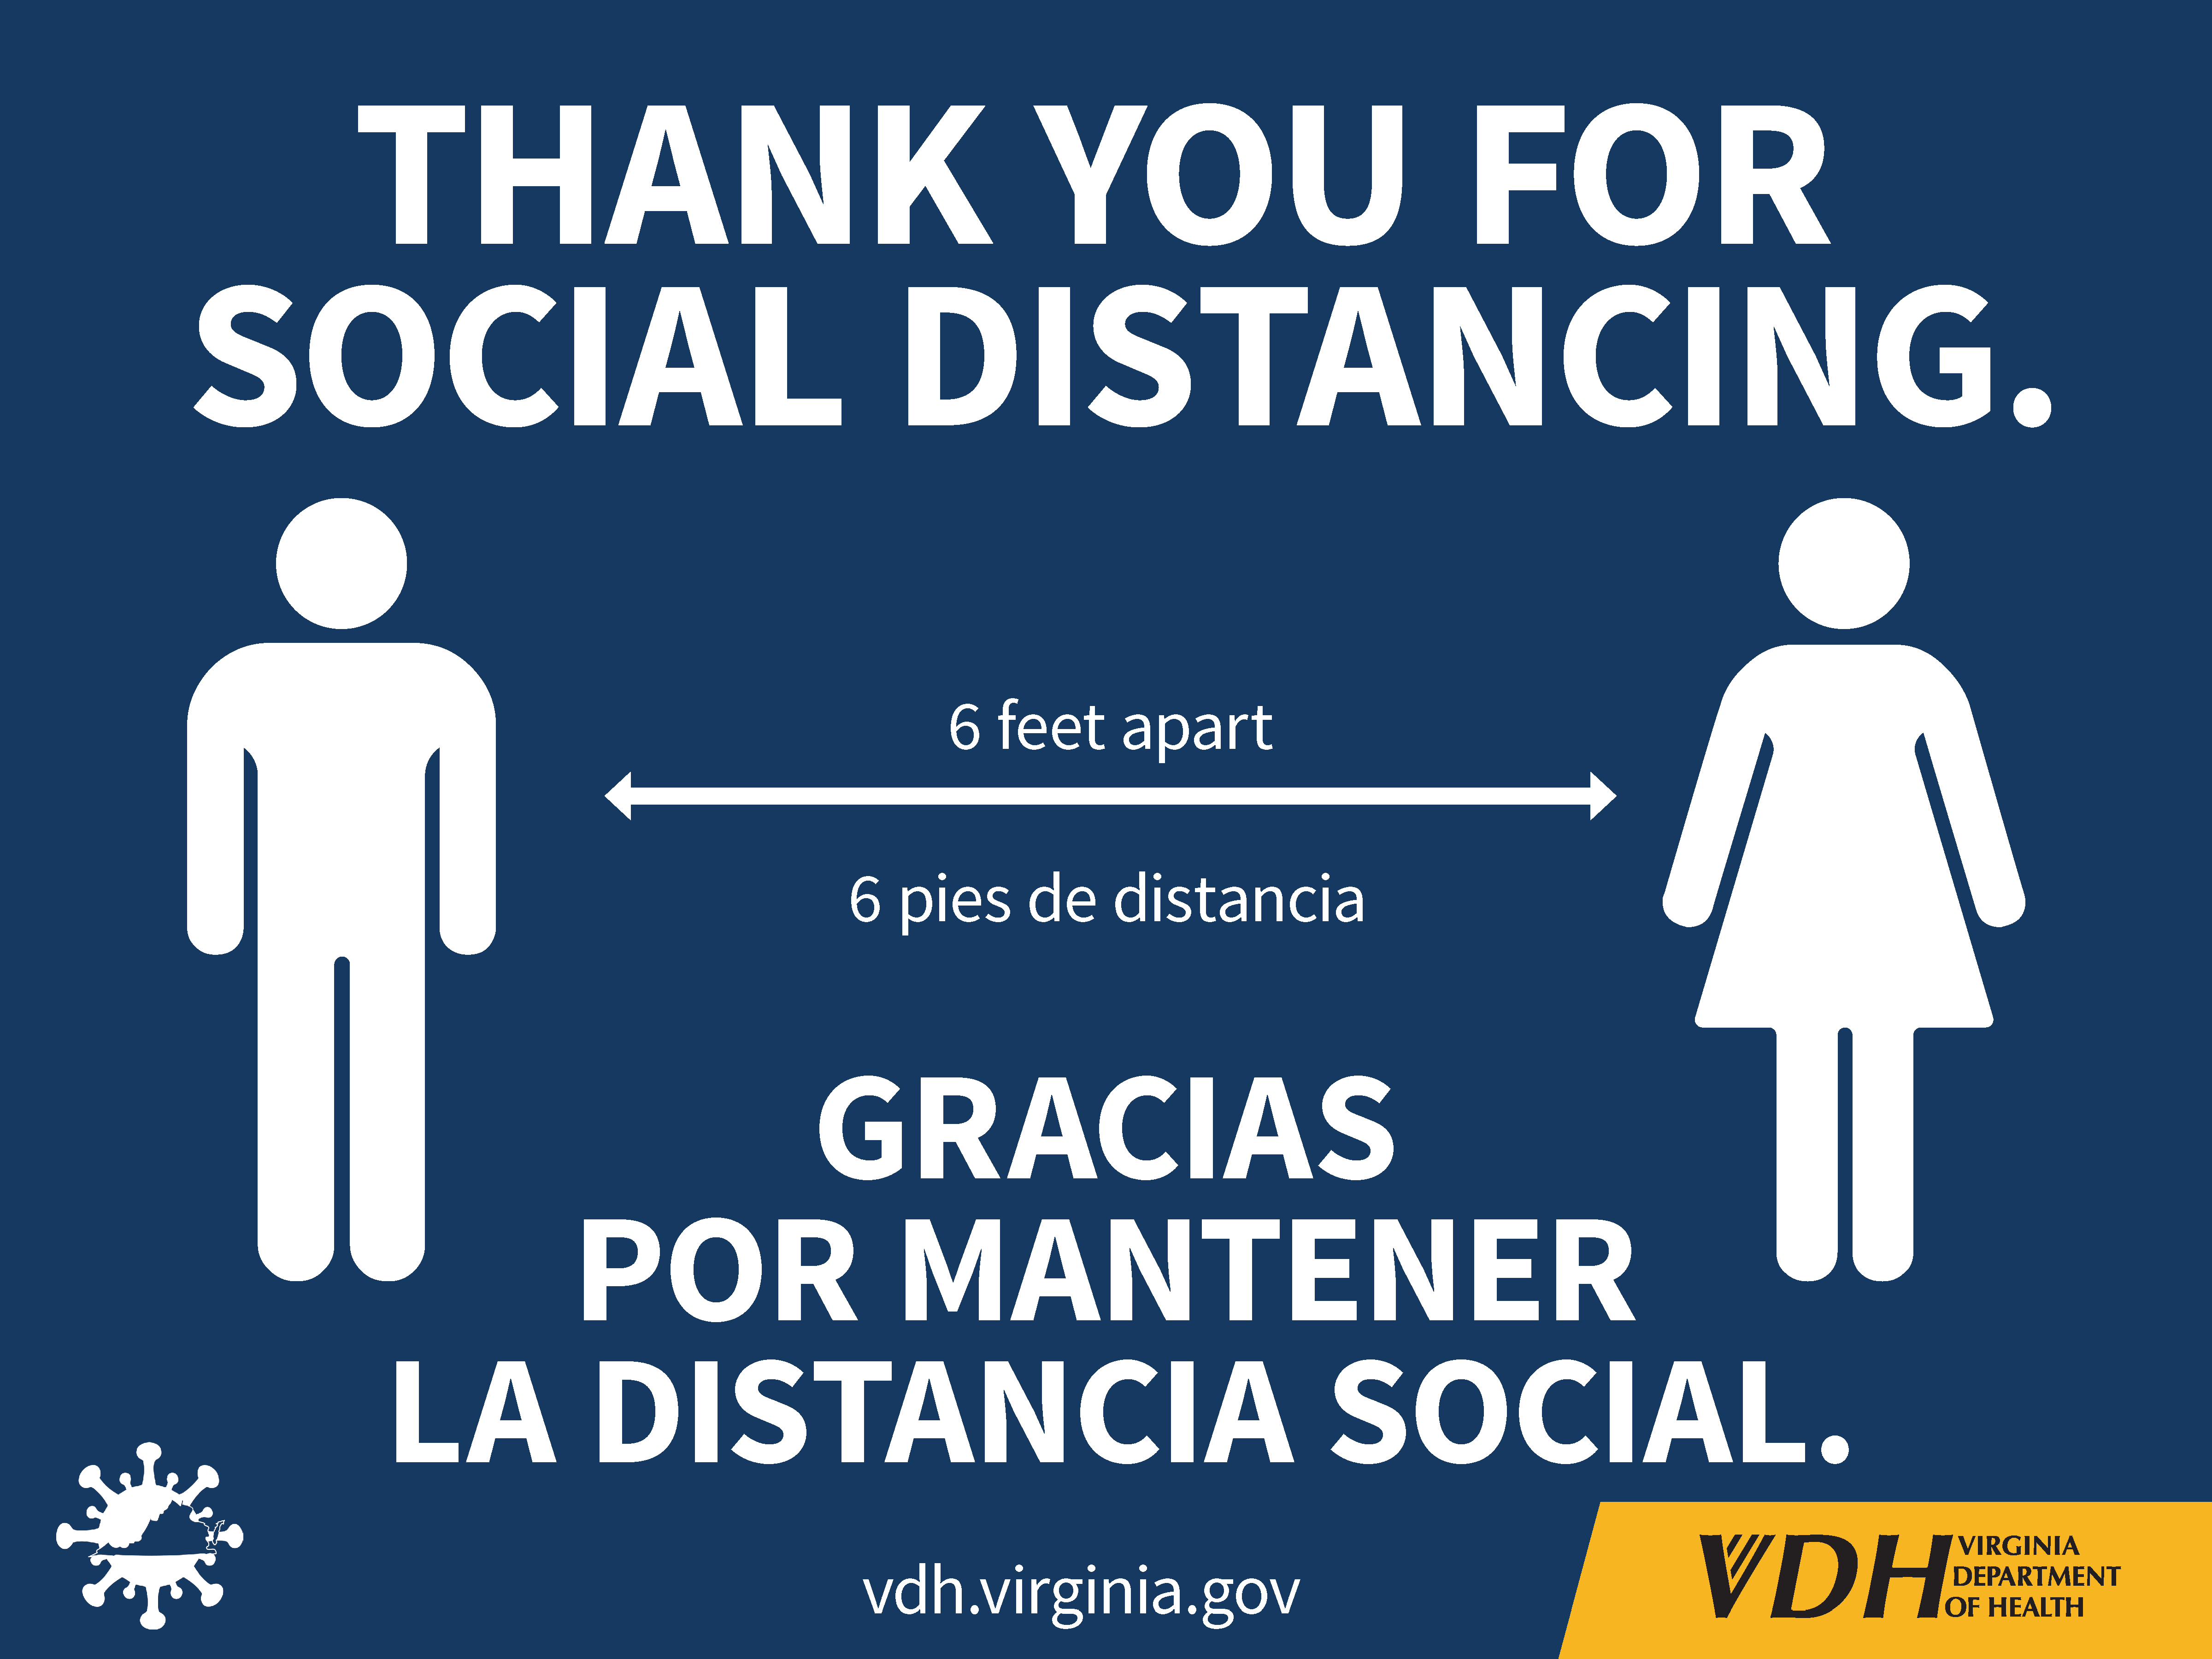 Thank you for social distancing bilingual